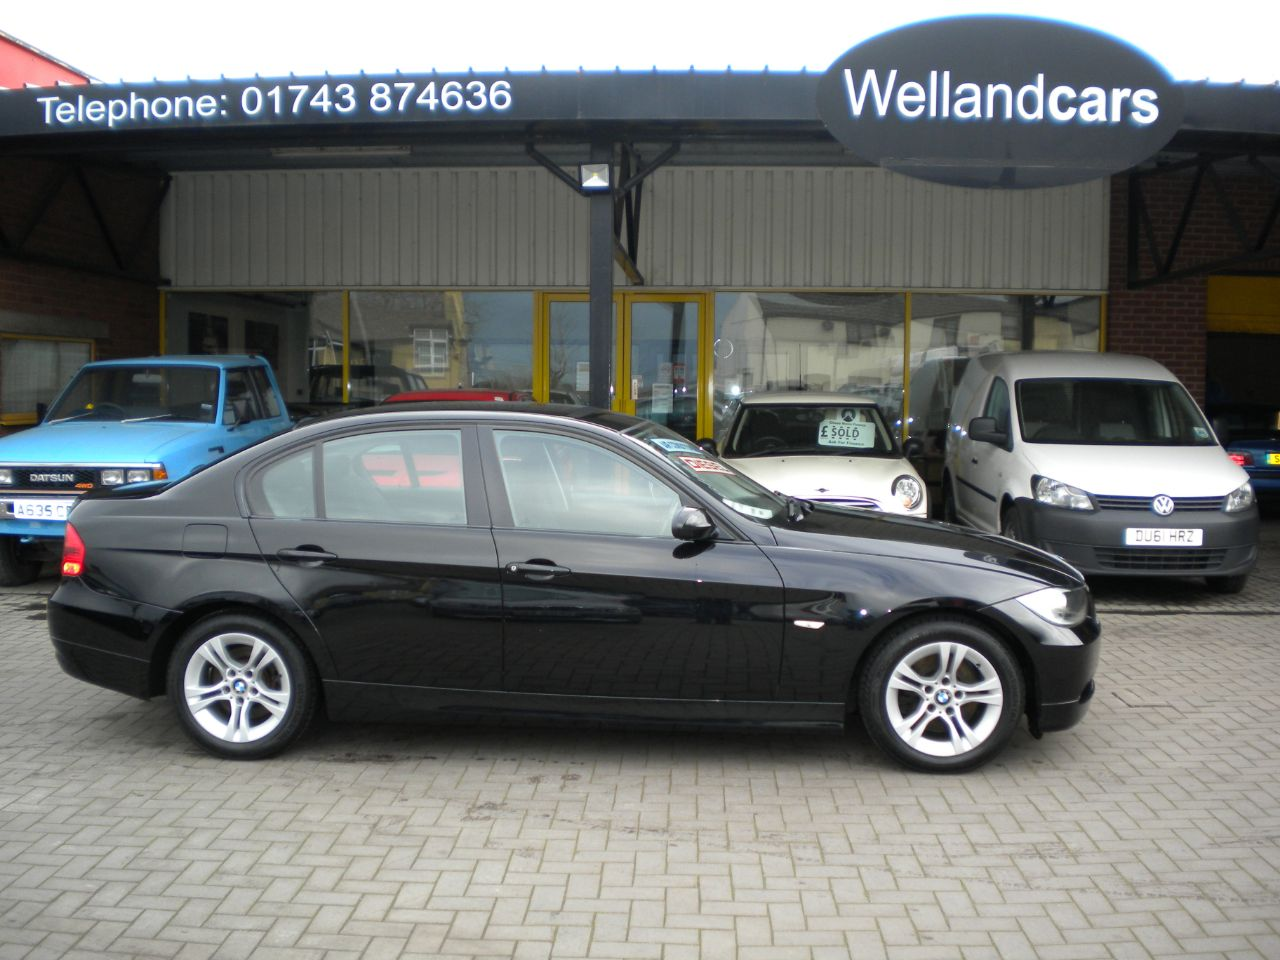 BMW 3 Series 2.0 320d SE [177] 4dr Saloon 6 Speed Manual Turbo Diesel, 1 Owner, F/S/H, Dual Climate Control A/C. Saloon Diesel Metallic Black at Welland Cars Shrewsbury